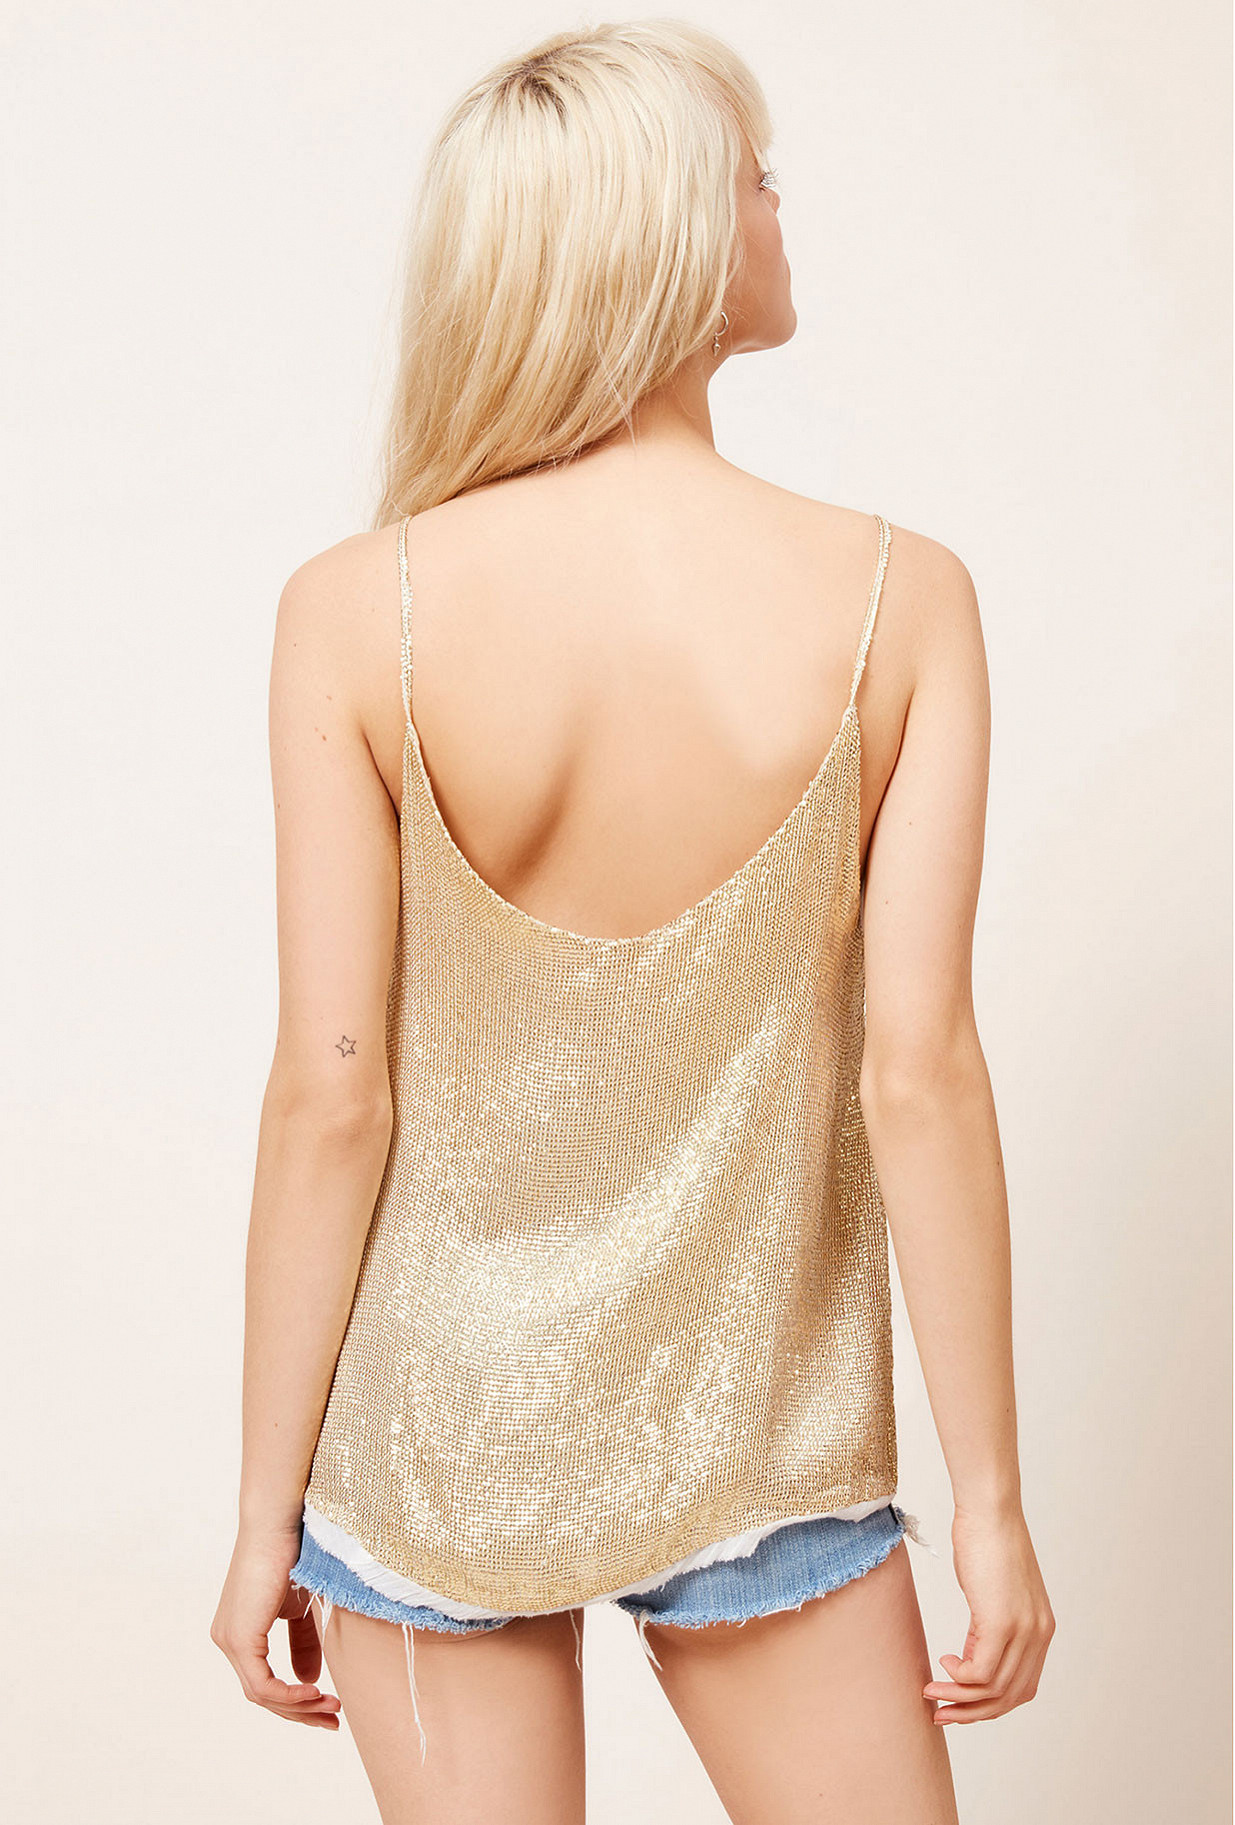 Gold  Top  Photon Mes demoiselles fashion clothes designer Paris